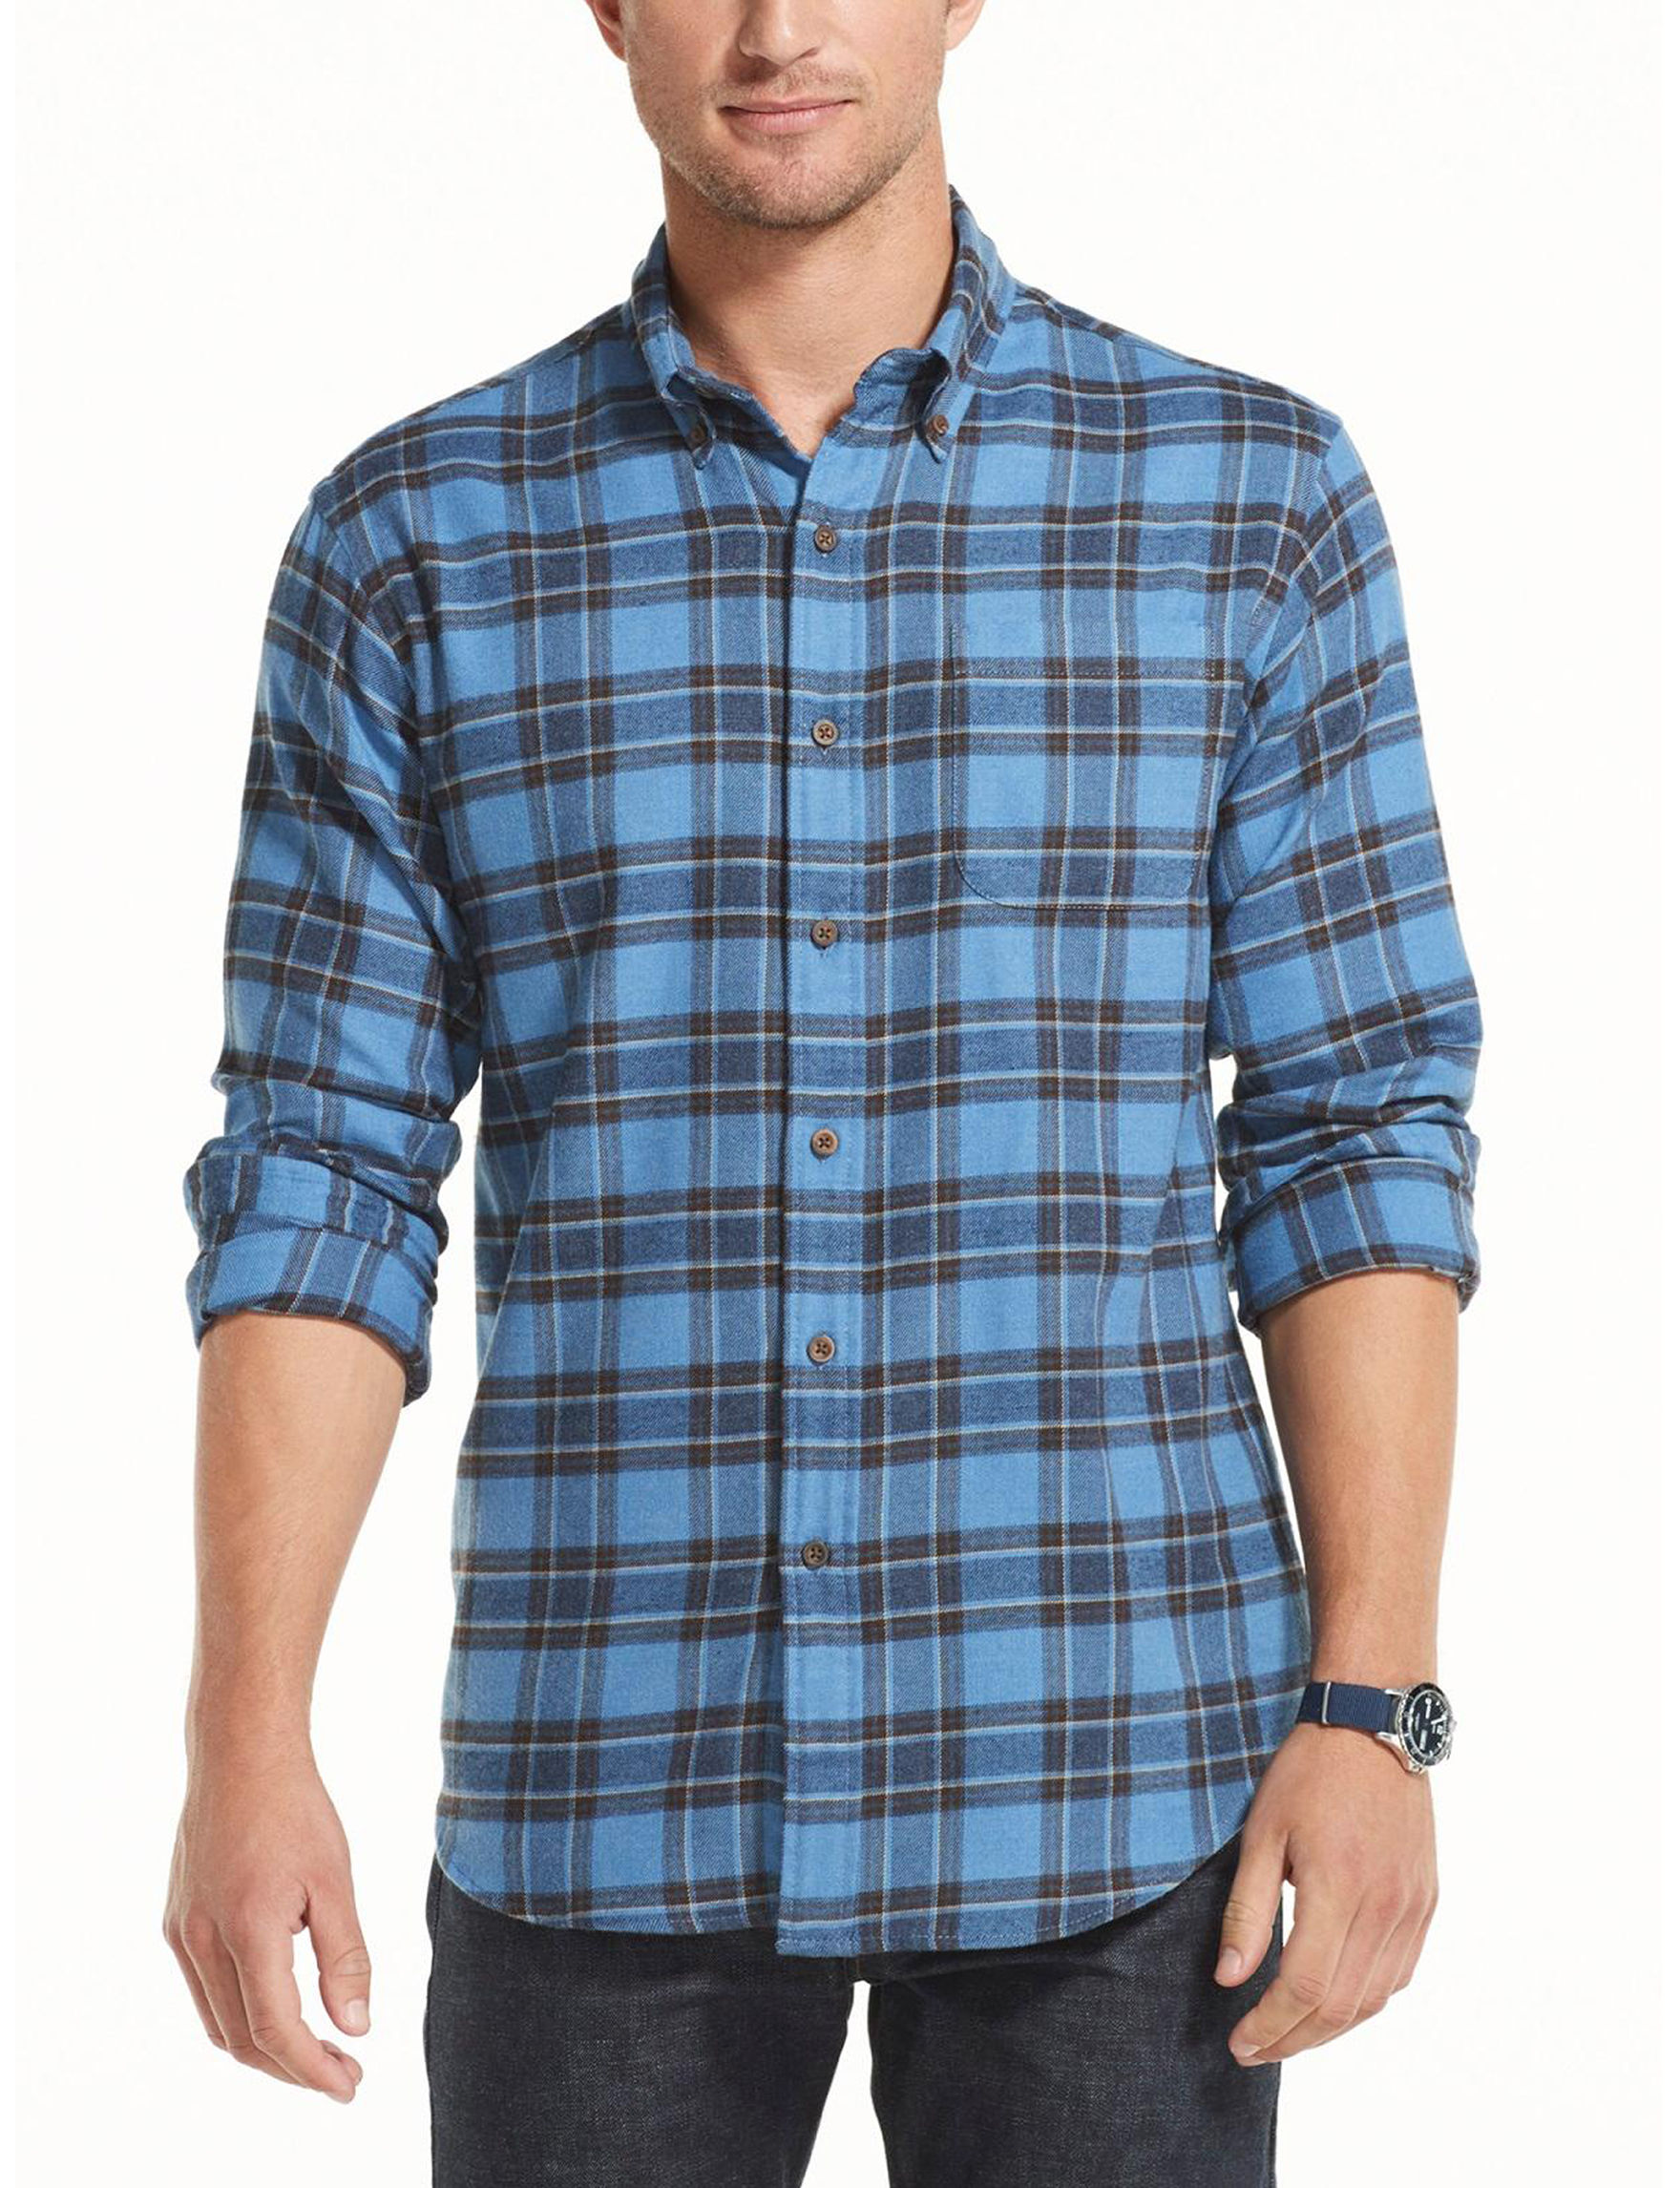 Arrow Delft Casual Button Down Shirts